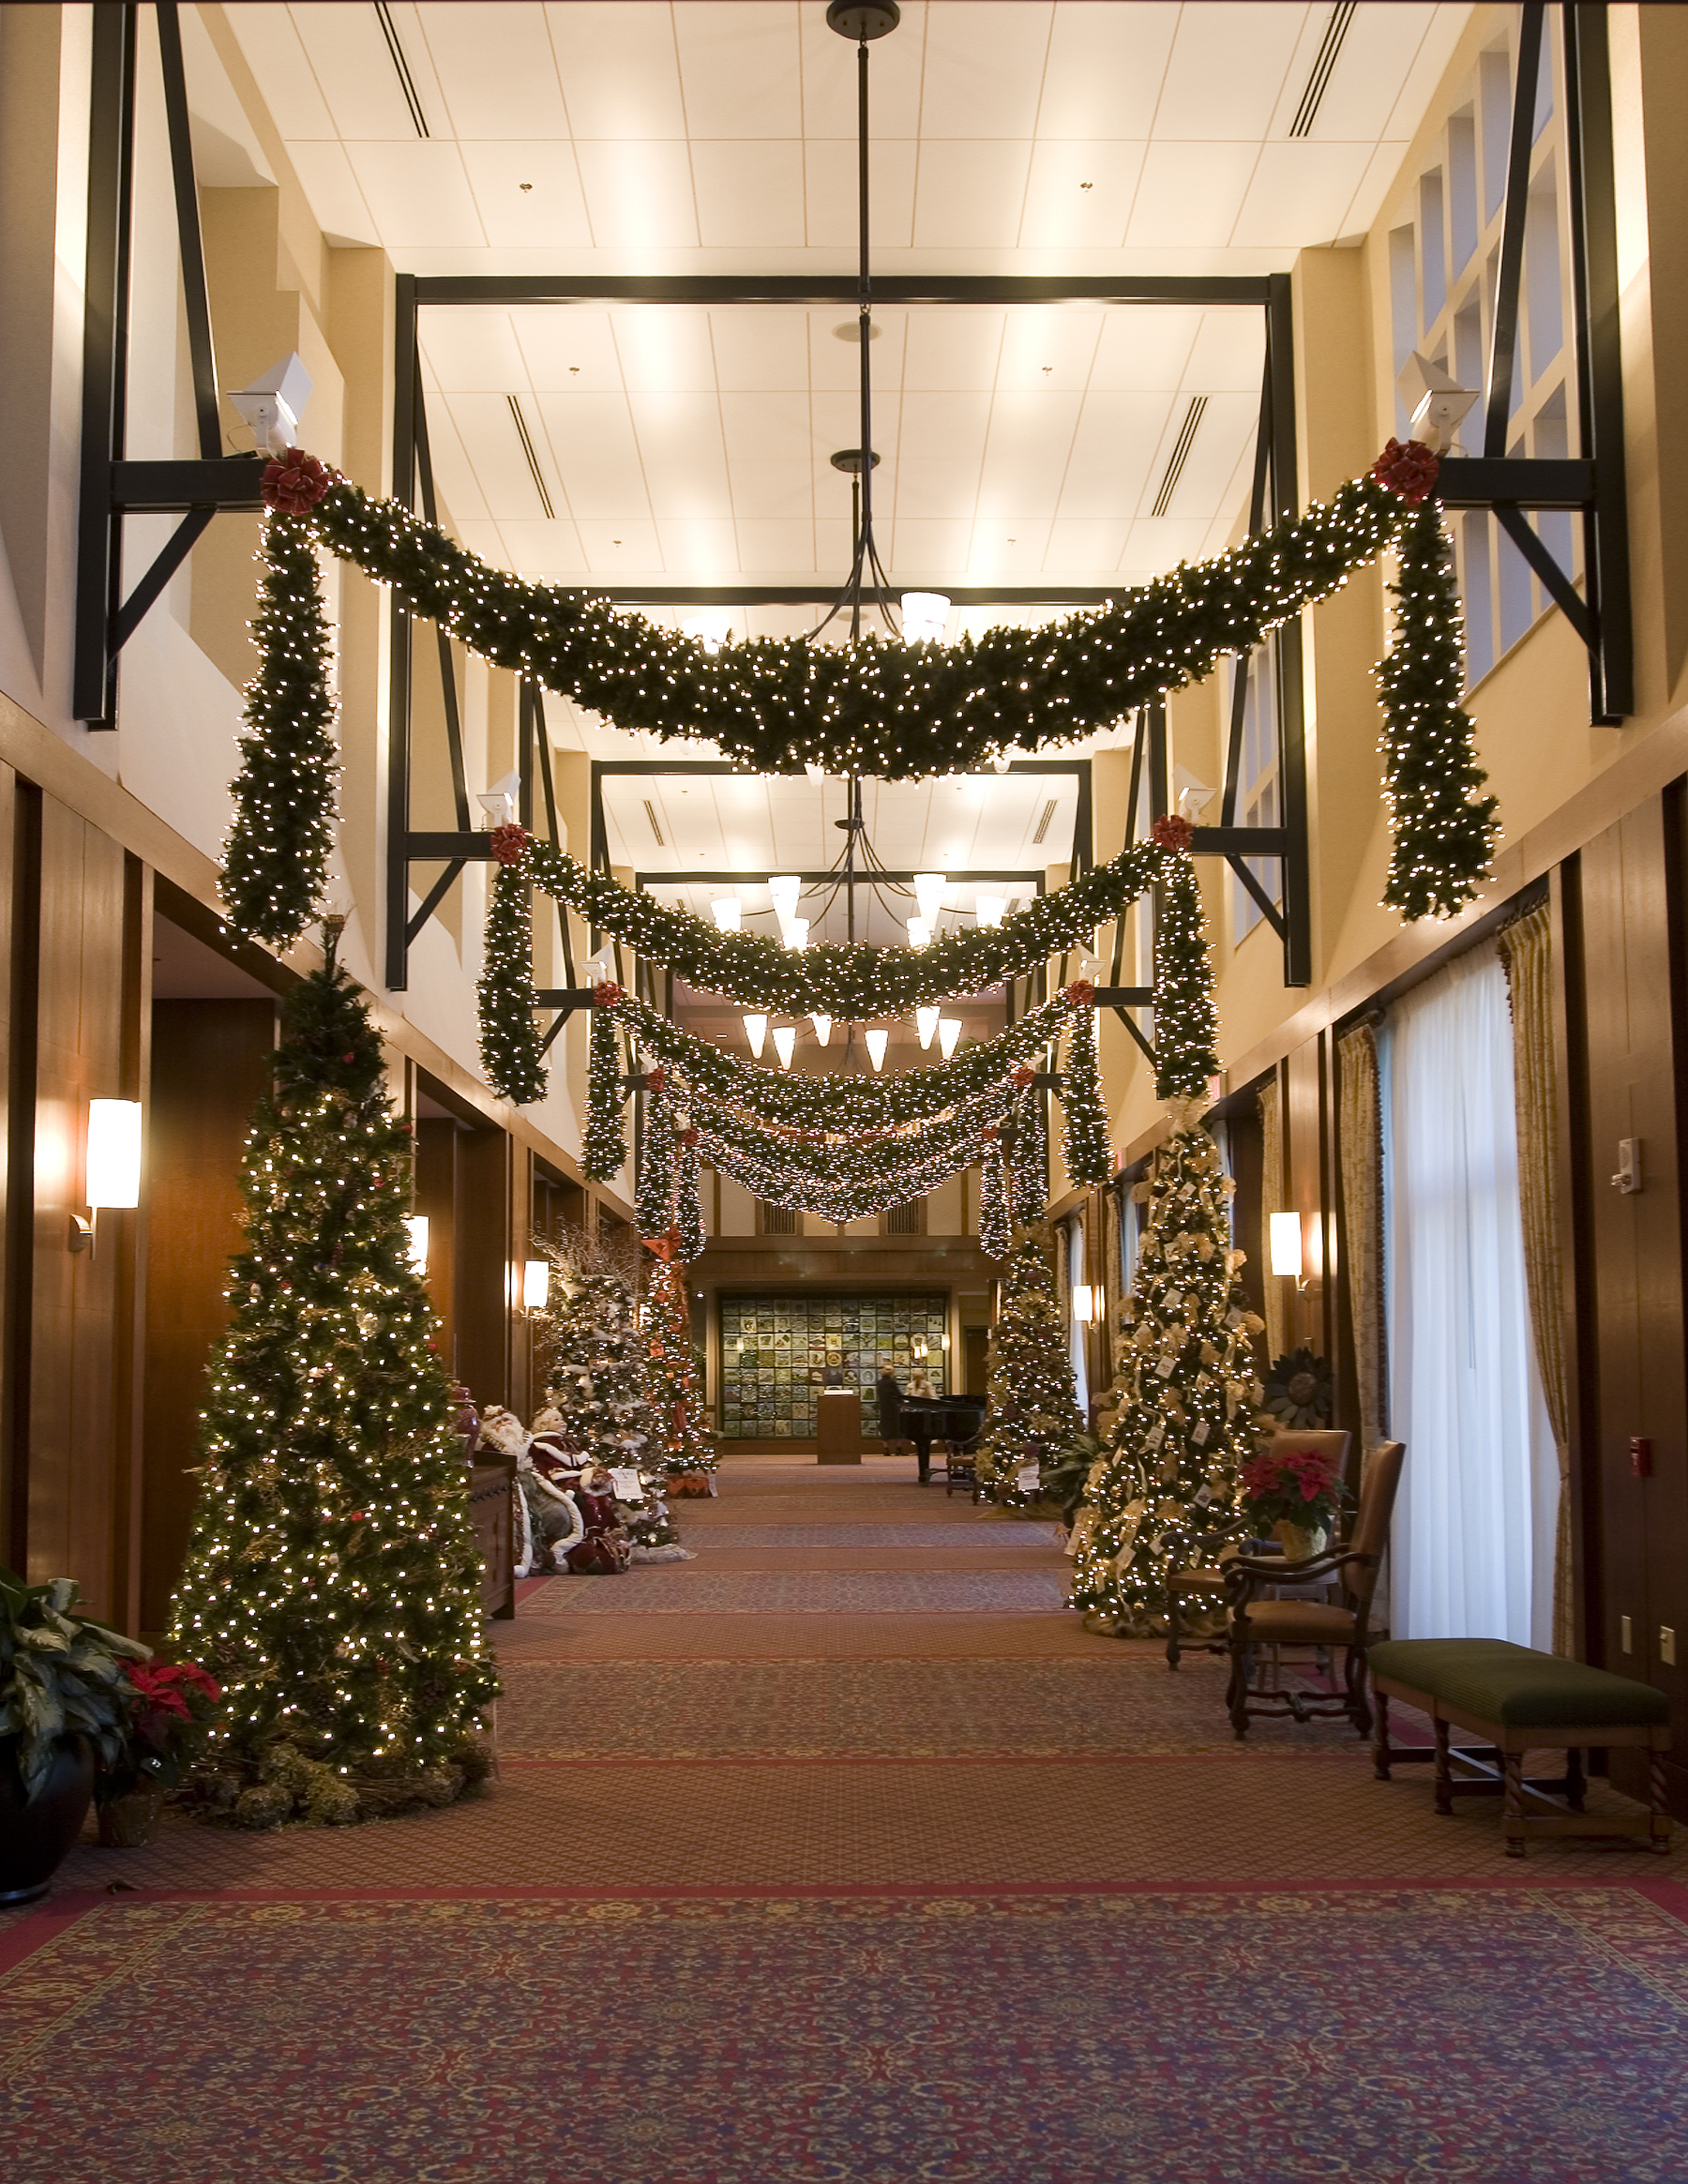 Holiday visitors will experience a festive atmosphere and must-see décor.